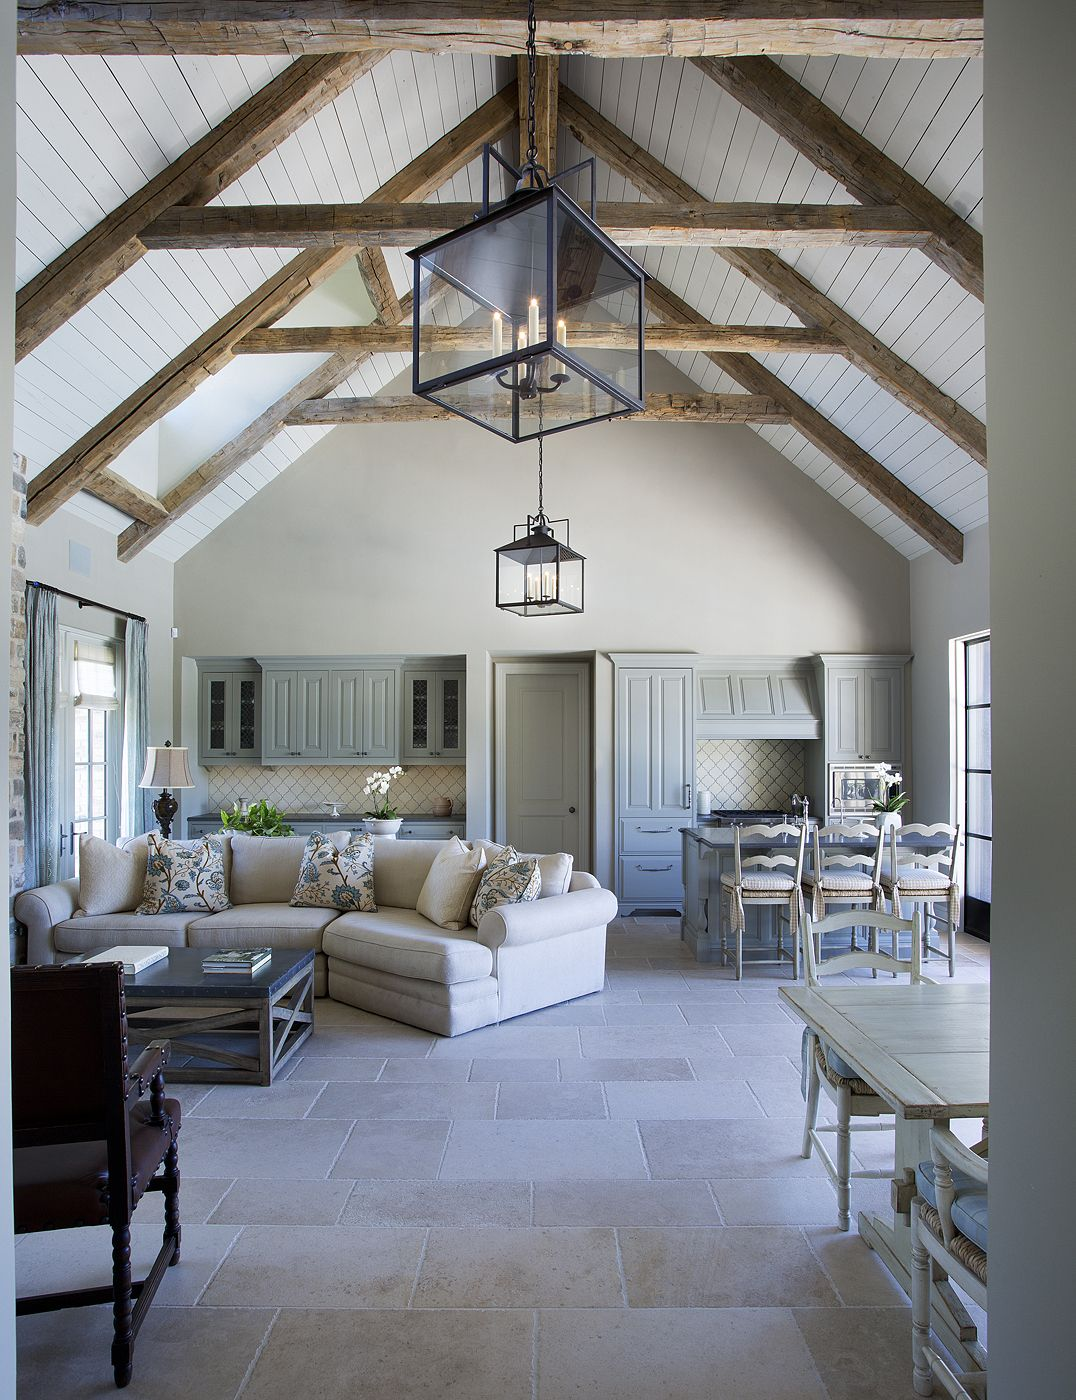 Cathedral Ceilings With Exposed Beams White Washed Bright Interior Stone Floor